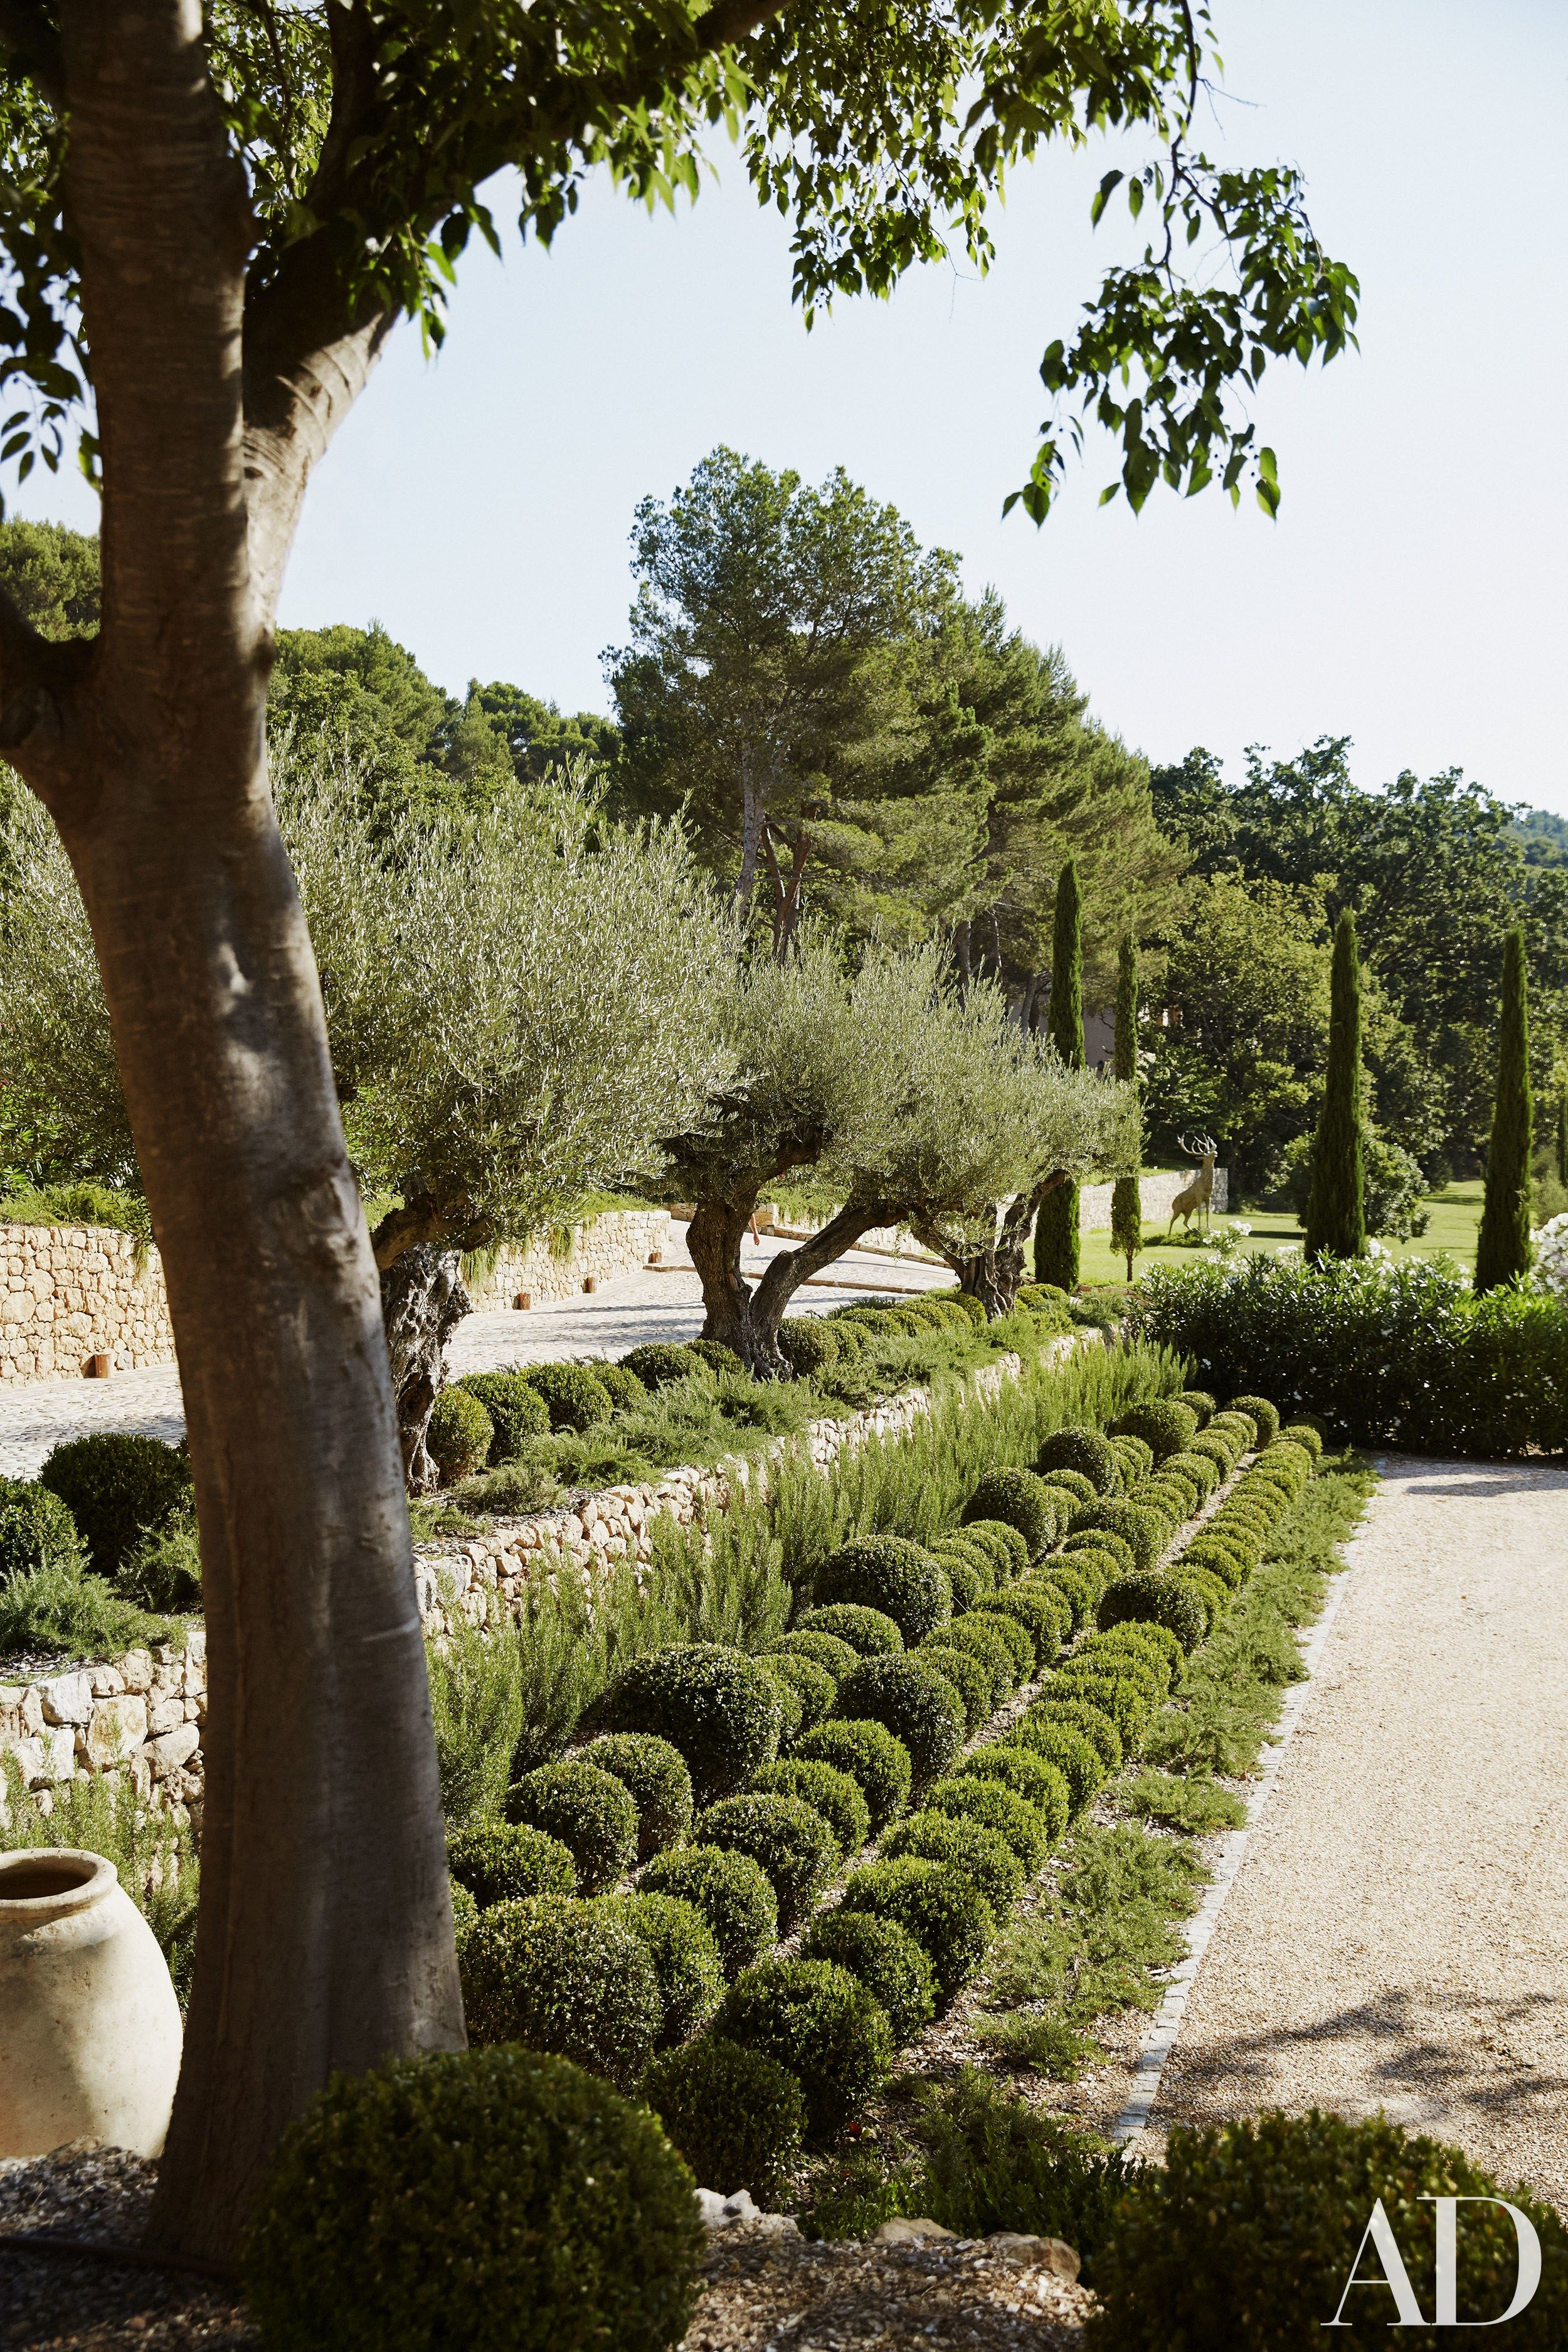 Frederic Fekkai S Gorgeous Vacation Home In The South Of France